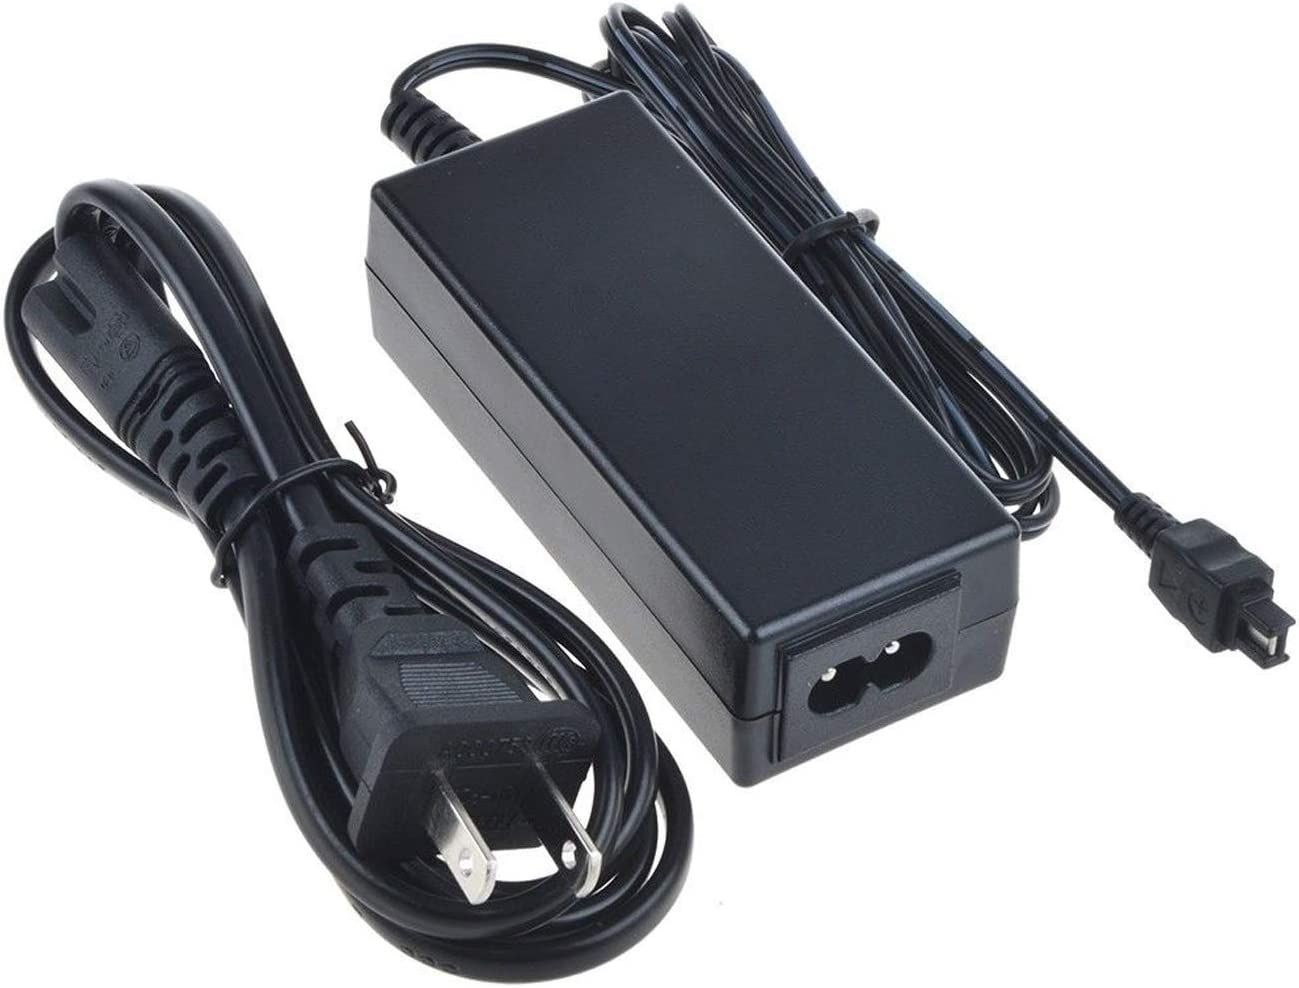 HDR-CX510E HDR-CX530E Handycam Camcorder HDR-CX520VE AC Power Adapter Charger for Sony HDR-CX500VE